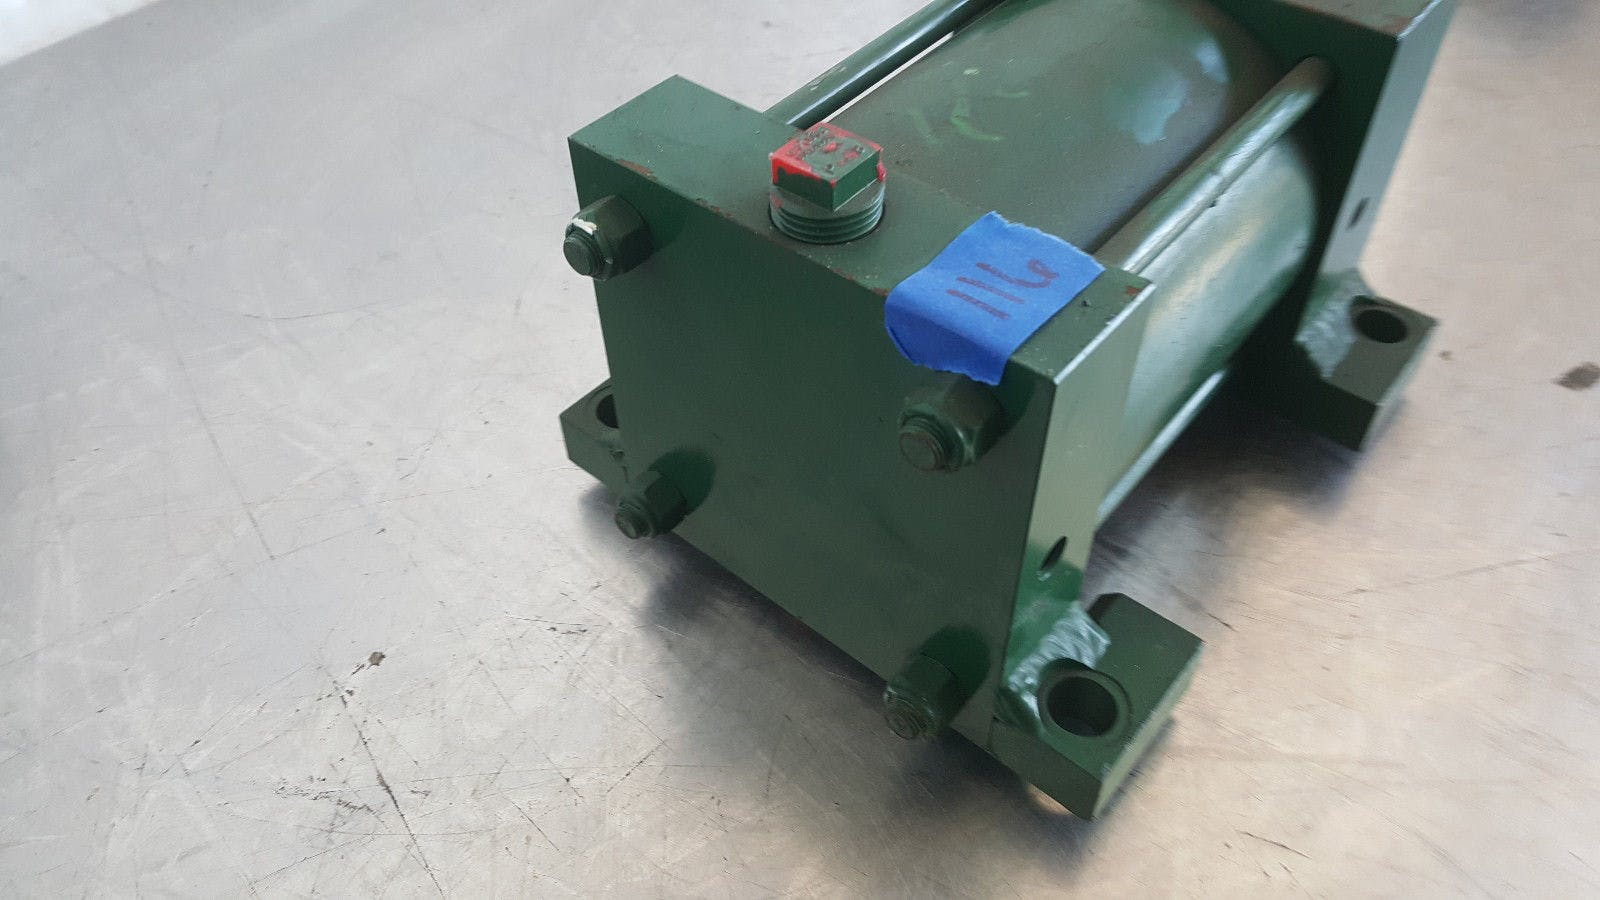 Peninsular 04.00 CP1400 3.000 250 Psi Air Pneumatic Cylinder New - sold by Jak's Restaurant Supply